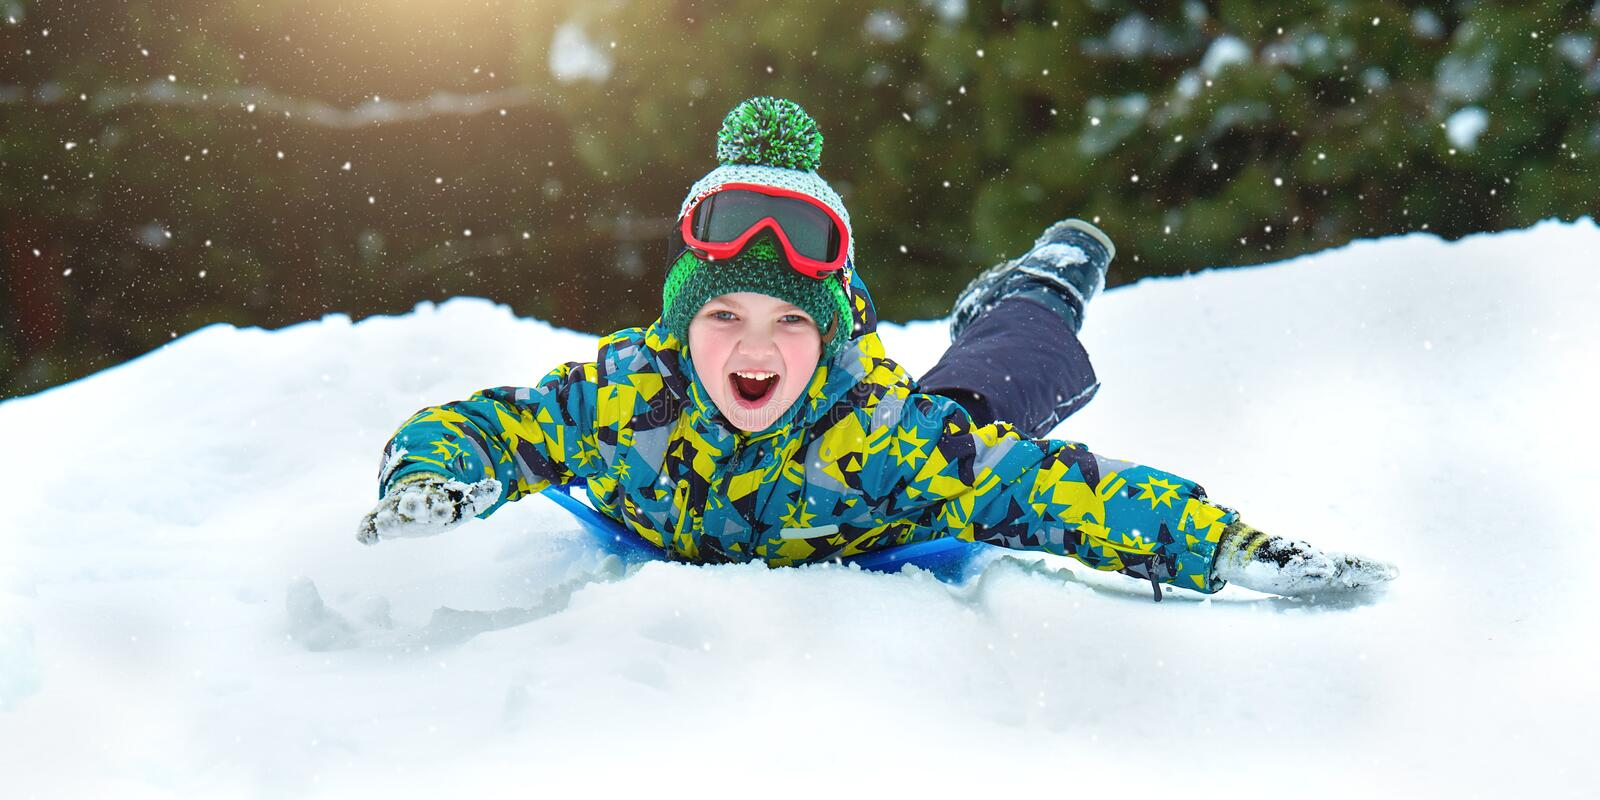 Boy sledding in a snowy forest. Outdoor winter fun for Christmas vacation. stock photo